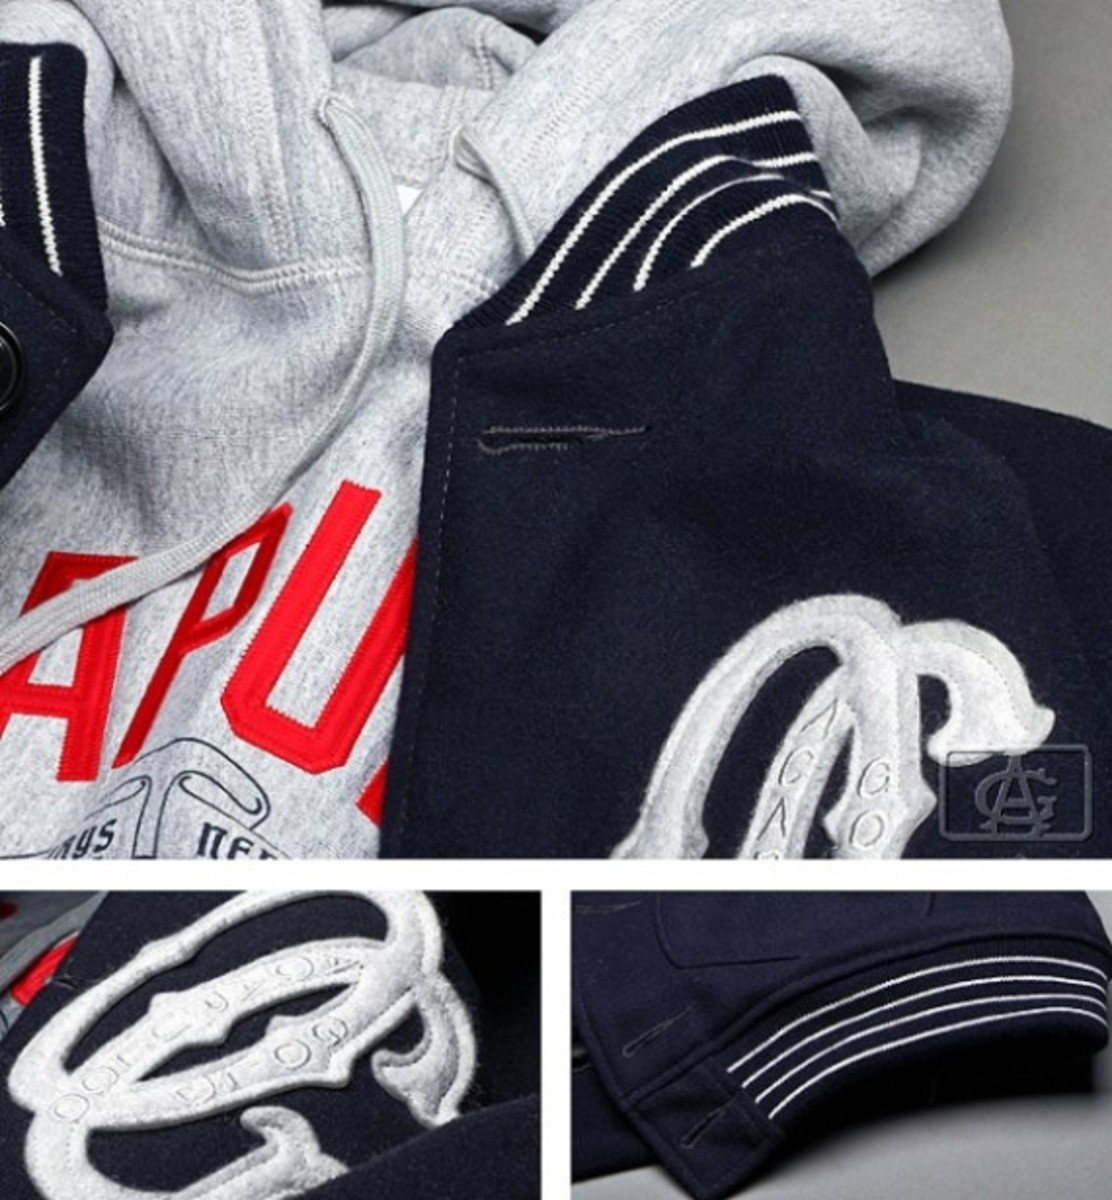 acapulco-gold-fall-2011-collection-preview-2-05